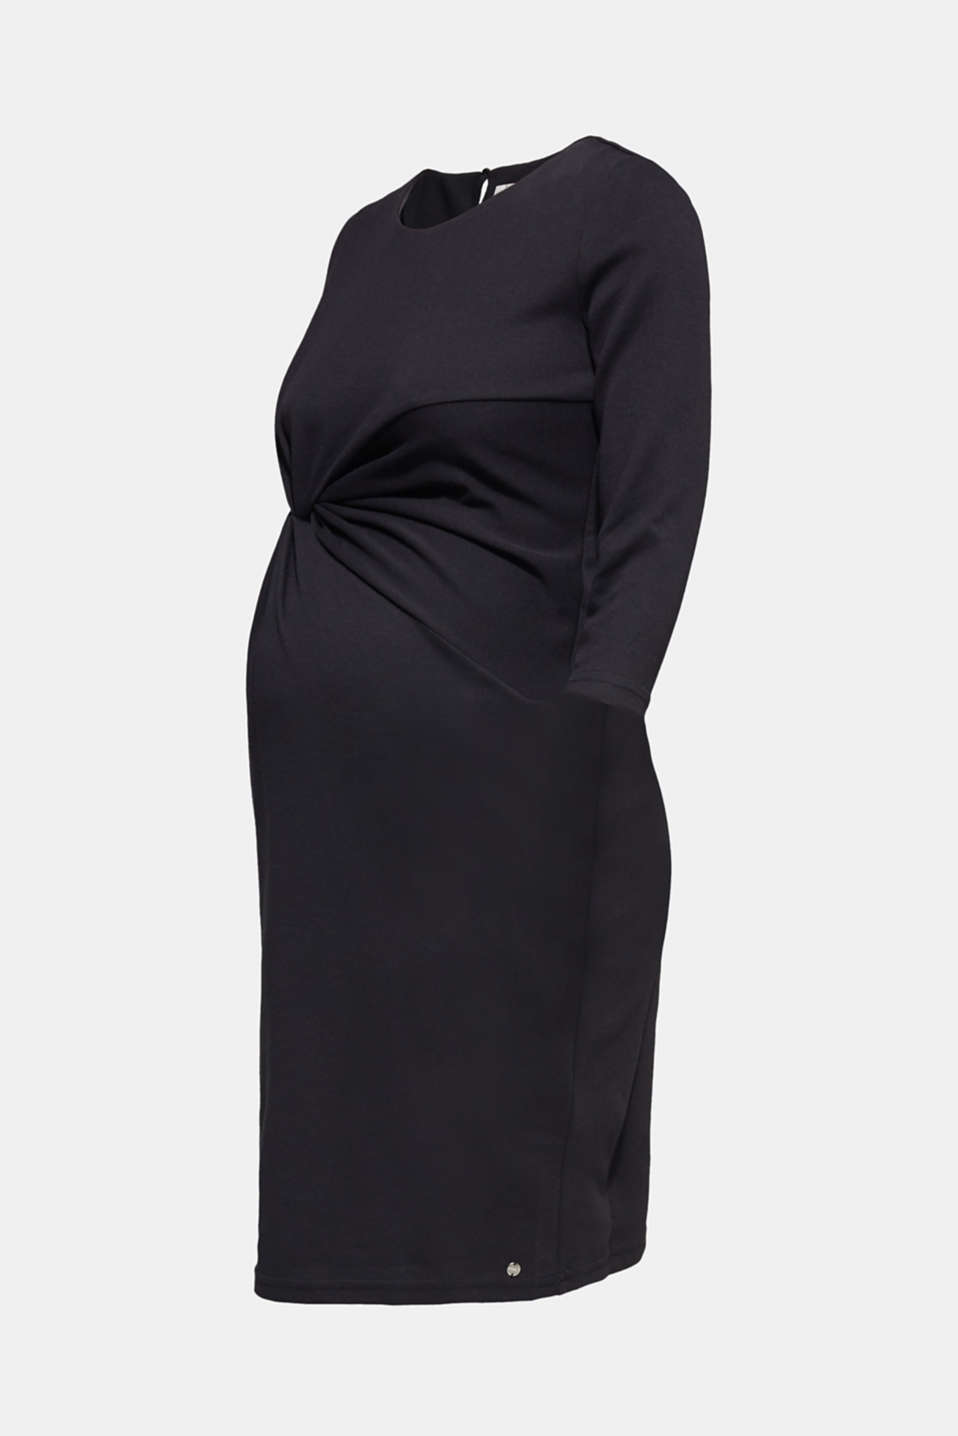 Draped stretch jersey dress, LCBLACK, detail image number 5